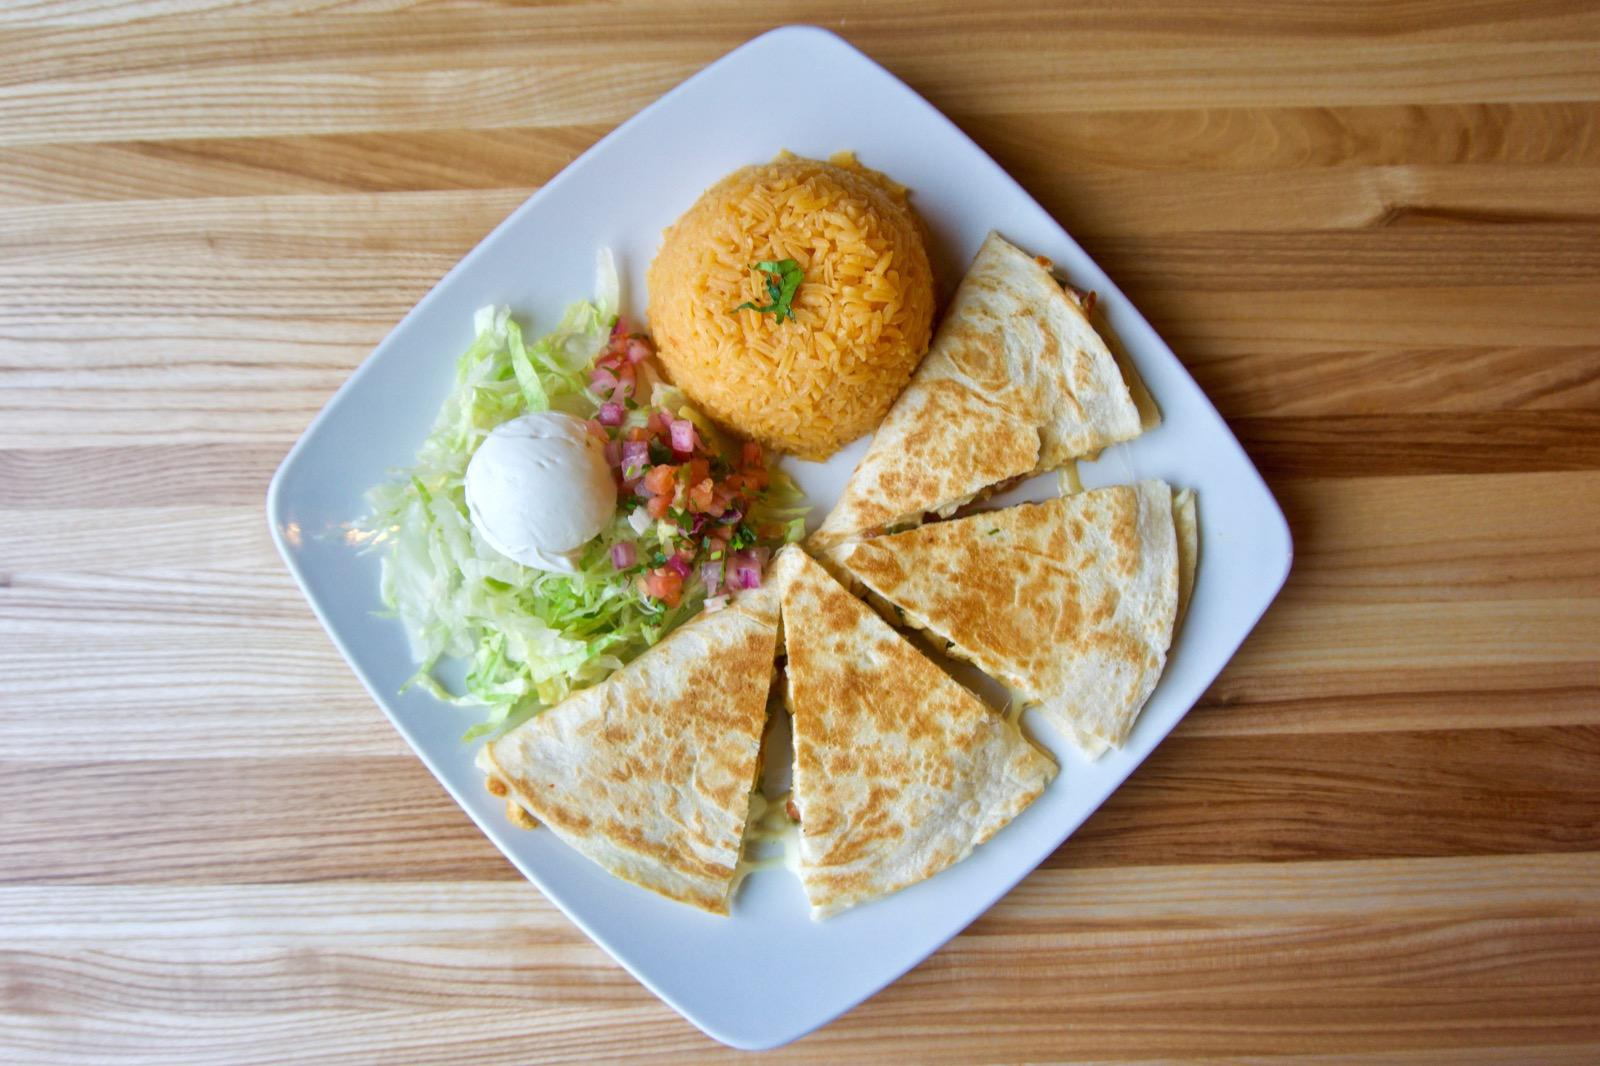 <p>Supreme chicken quesadilla: stuffed with onion, peppers, mushrooms, tomato, and zucchini, served with rice, beans, lettuce, pico de gallo, and sour cream / Image: Brian Planalp // Published: 1.29.18</p>